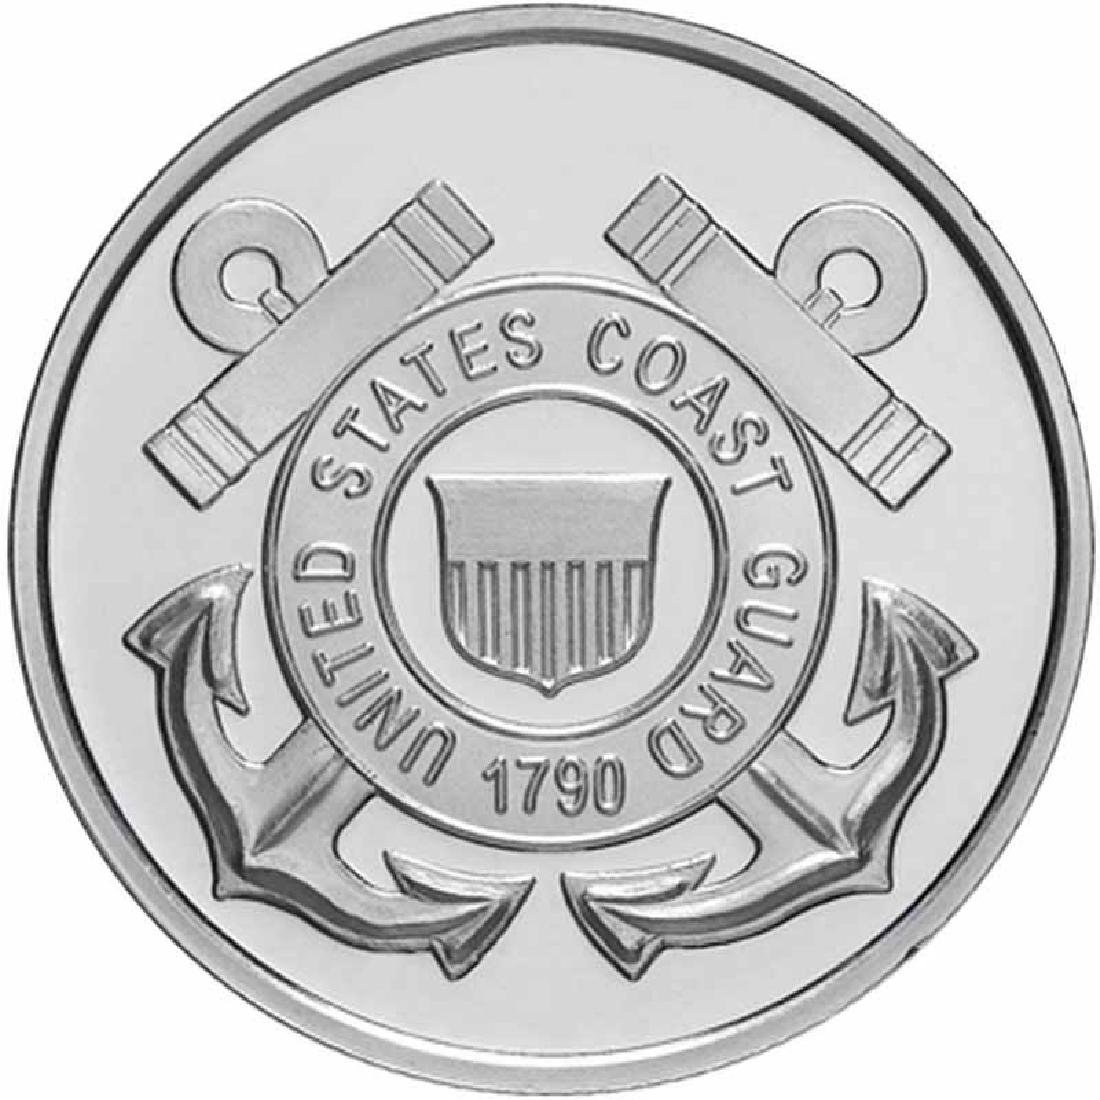 US Coast Guard .999 Silver 1 oz Round